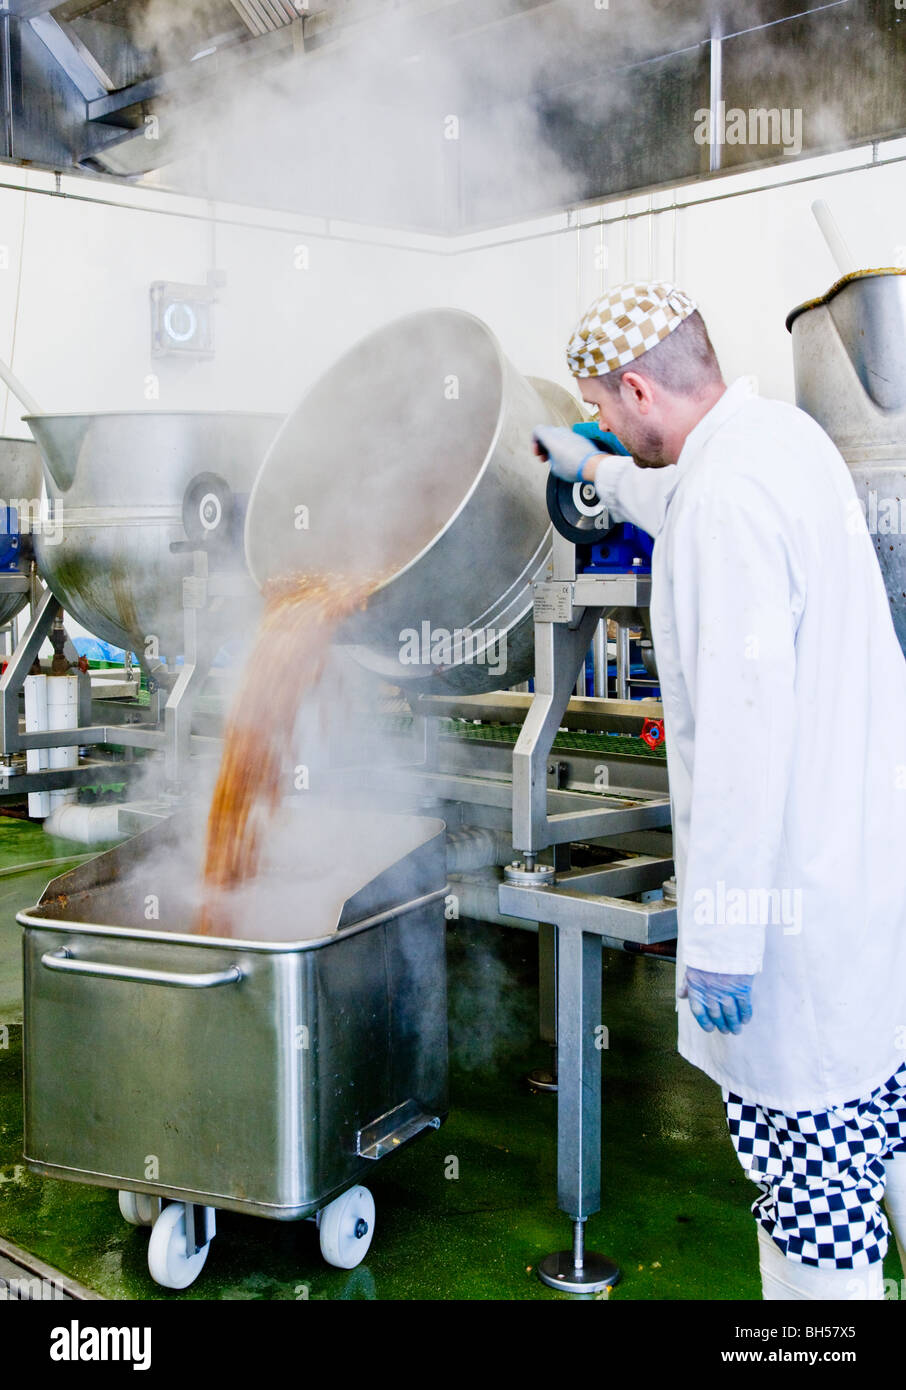 Inside a food factory making jams, pickles and condiments showing a male worker emptying a cauldron of pickles into - Stock Image